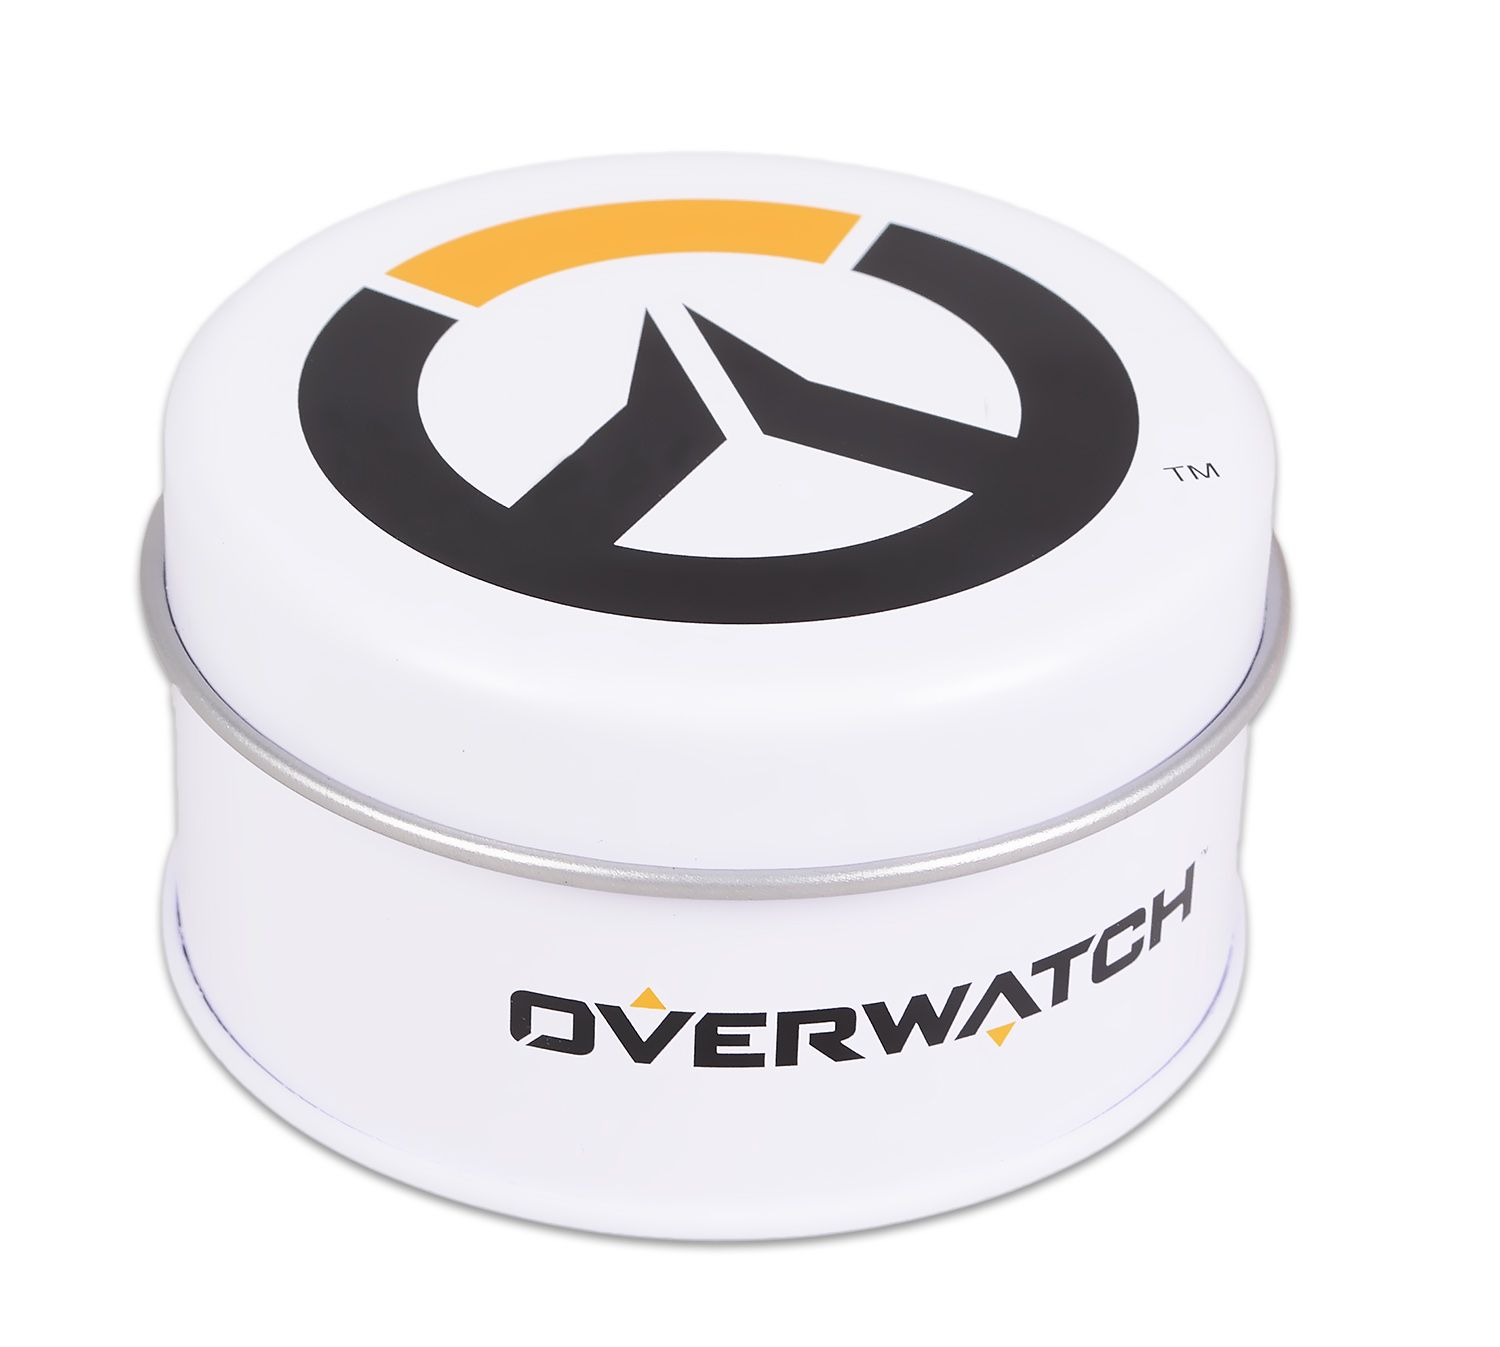 Overwatch Premium Collector's Pin - 1